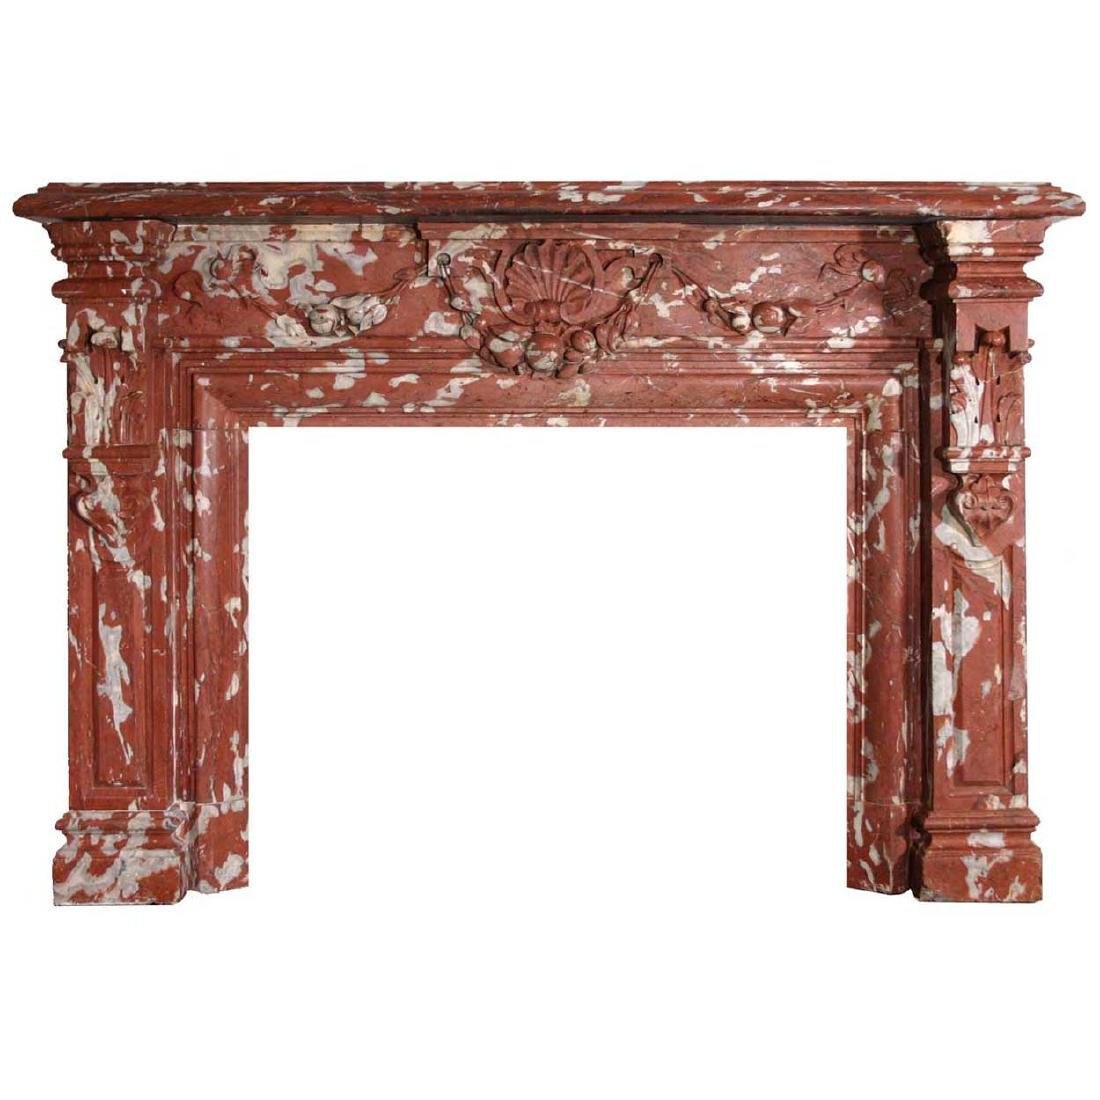 French Louis XIV Red Languedoc Marble Fireplace